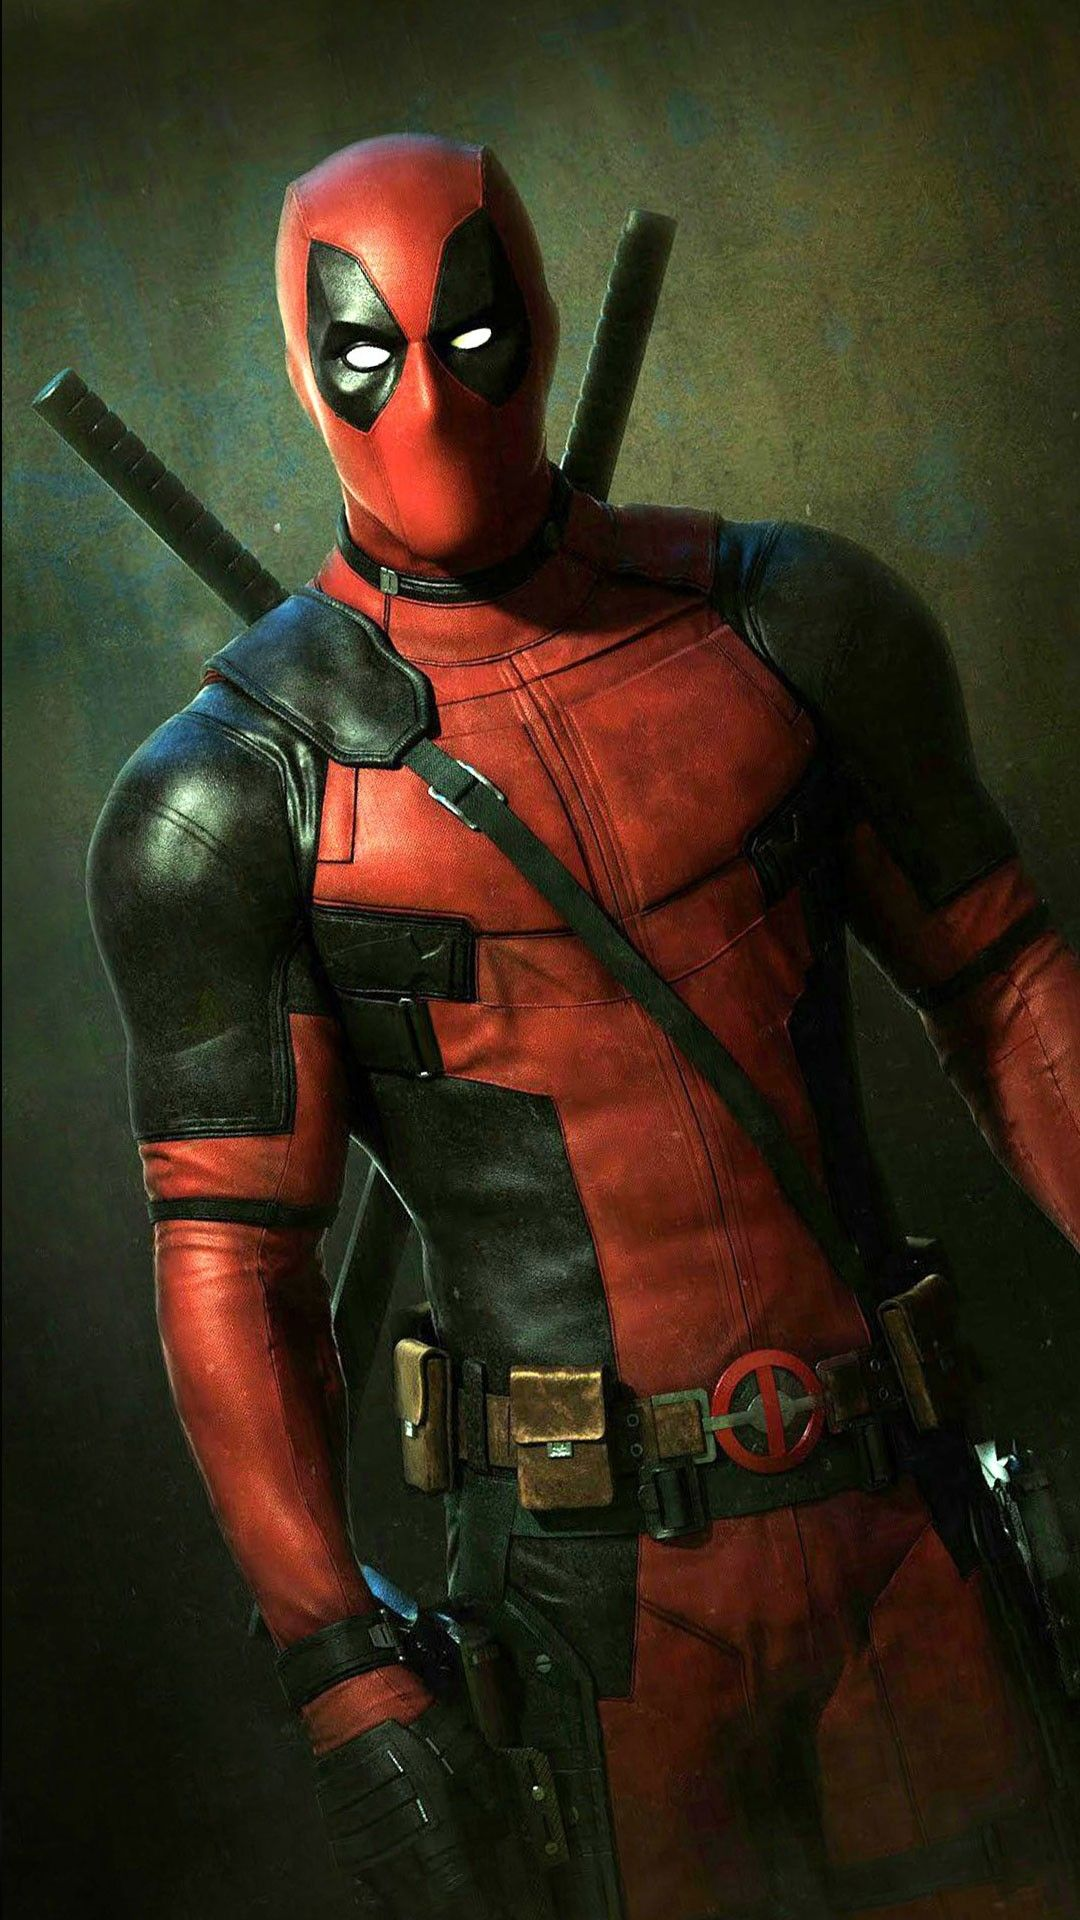 1080x1920 Deadpool HD Wallpapers for iPhone 7 | Wallpapers.Pictures